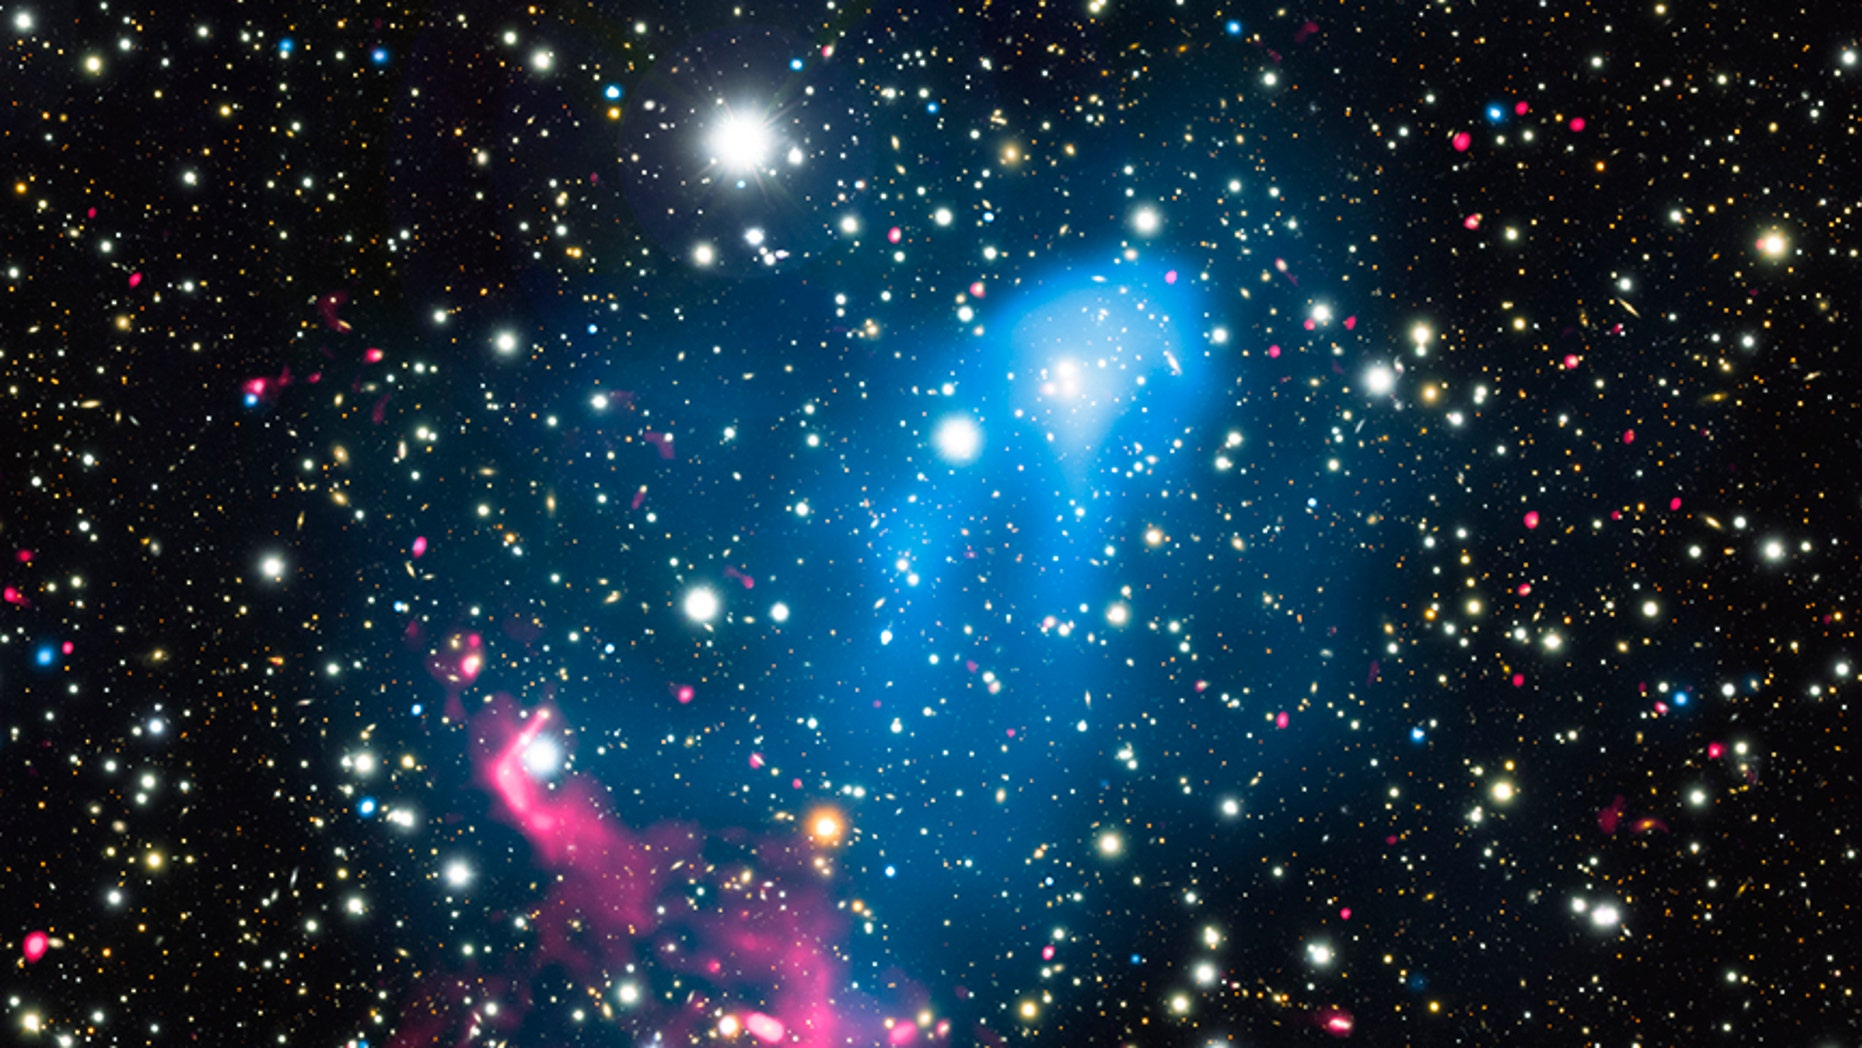 Particles ejected from a supermassive black hole are caught up in a galaxy merger, blasting the material even more powerfully into space. ( X-ray: NASA/CXC/SAO/R. van Weeren et al.; Optical: NAOJ/Subaru; Radio: NCRA/TIFR/GMRT)